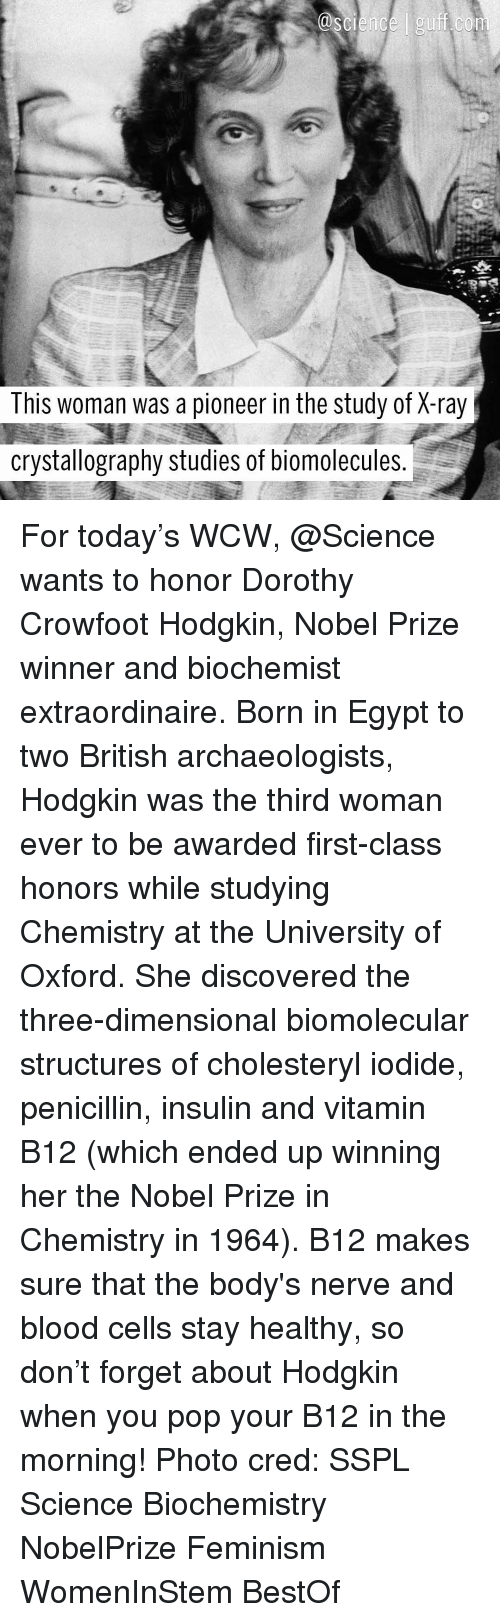 b12: This woman was a pioneer in the study of X-ray  crystallography studies of biomolecules For today's WCW, @Science wants to honor Dorothy Crowfoot Hodgkin, Nobel Prize winner and biochemist extraordinaire. Born in Egypt to two British archaeologists, Hodgkin was the third woman ever to be awarded first-class honors while studying Chemistry at the University of Oxford. She discovered the three-dimensional biomolecular structures of cholesteryl iodide, penicillin, insulin and vitamin B12 (which ended up winning her the Nobel Prize in Chemistry in 1964). B12 makes sure that the body's nerve and blood cells stay healthy, so don't forget about Hodgkin when you pop your B12 in the morning! Photo cred: SSPL Science Biochemistry NobelPrize Feminism WomenInStem BestOf